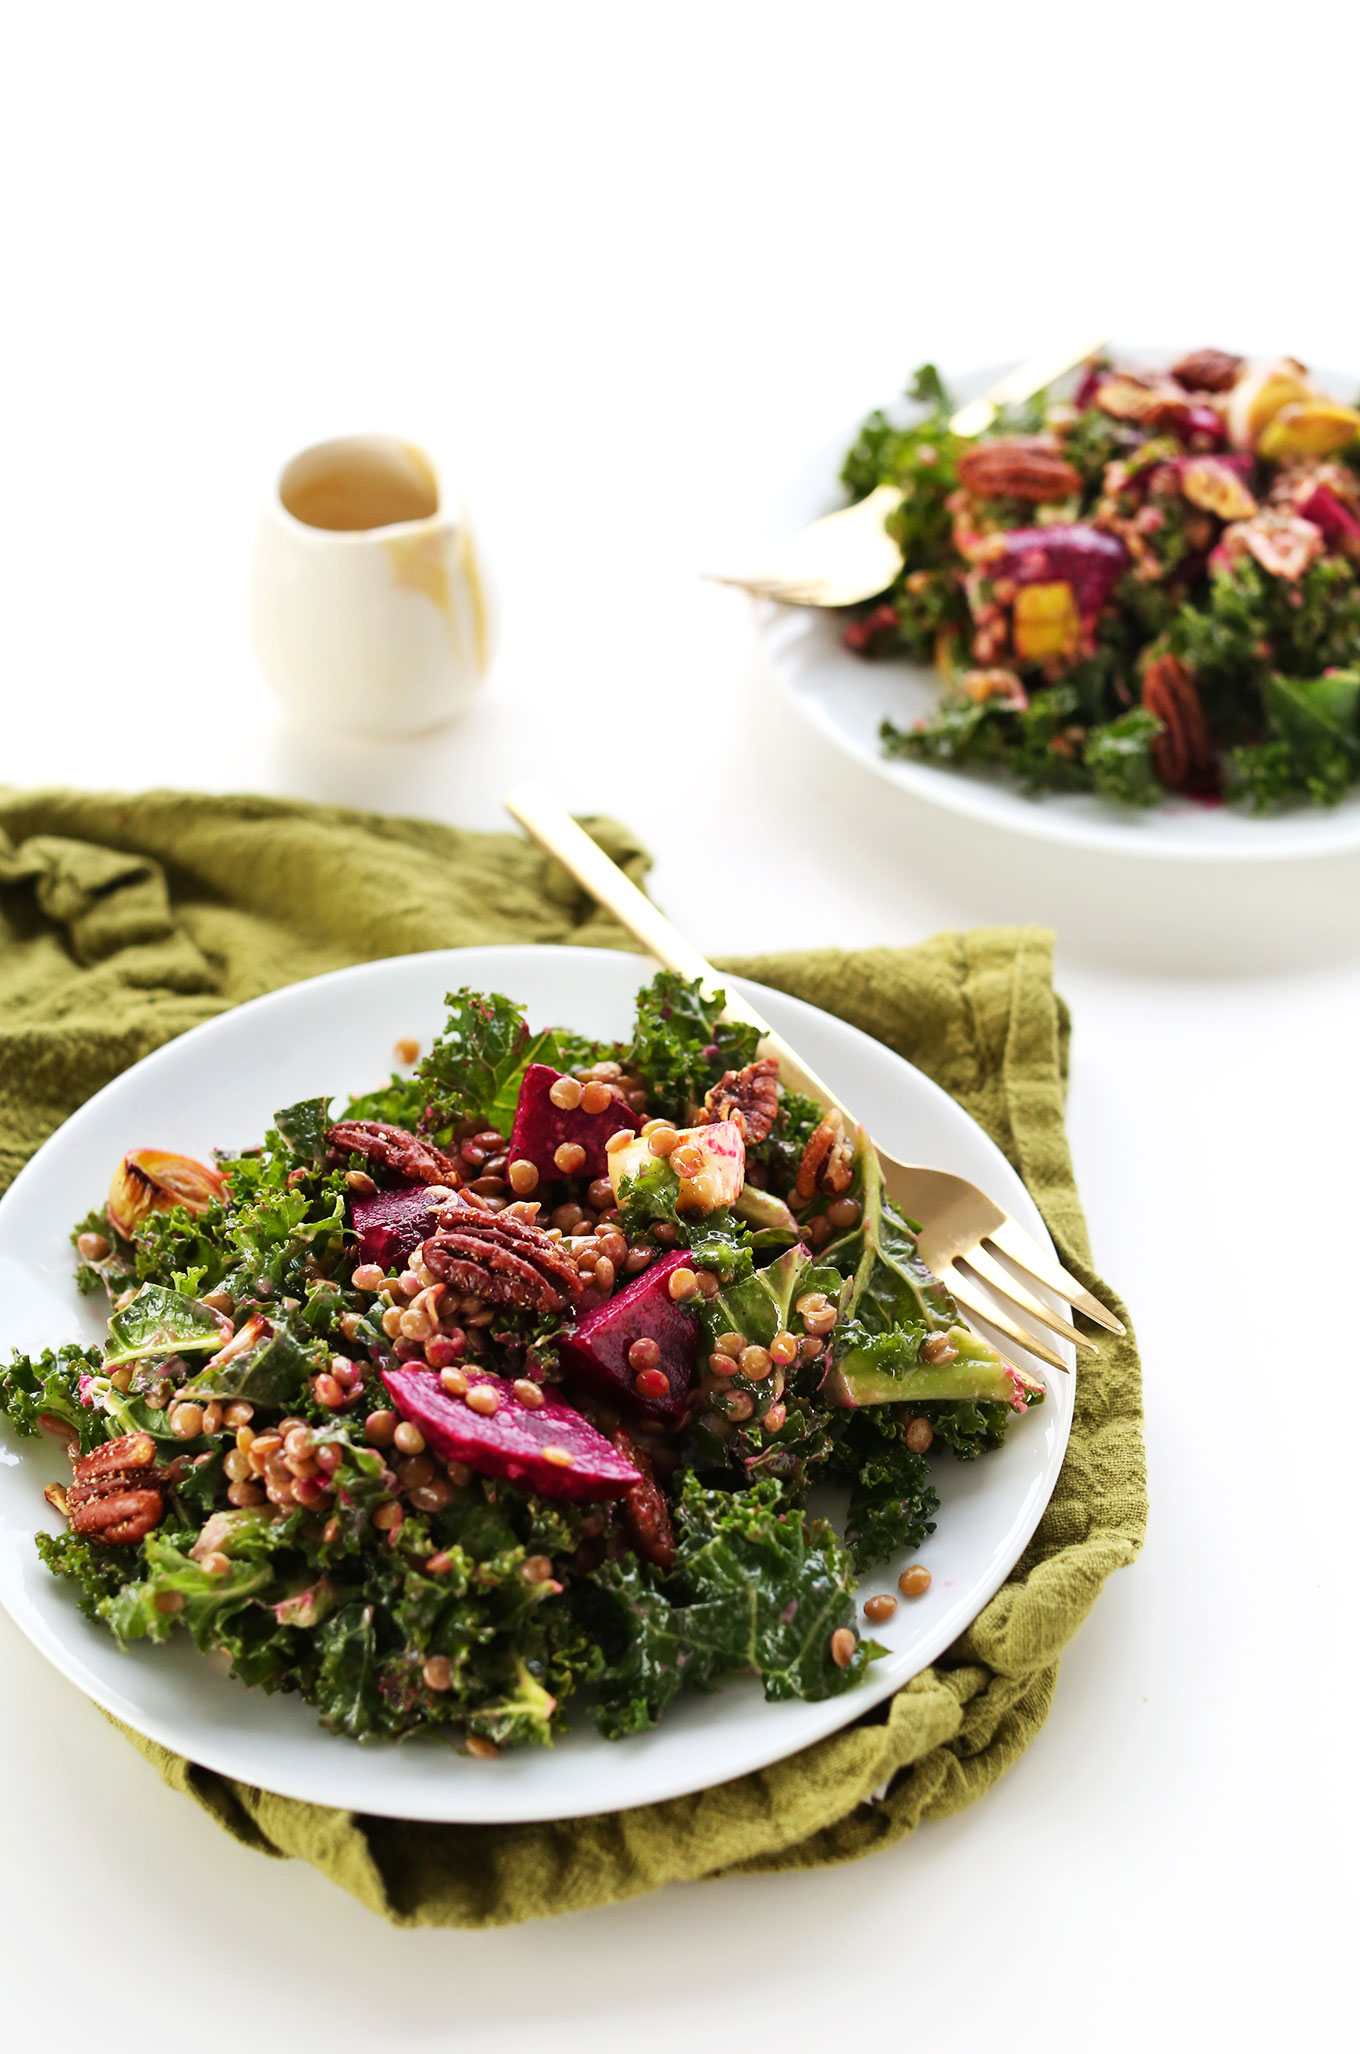 Dinner plate filled with our winter salad recipe of Kale, Lentils, Roasted Beets, and Leek